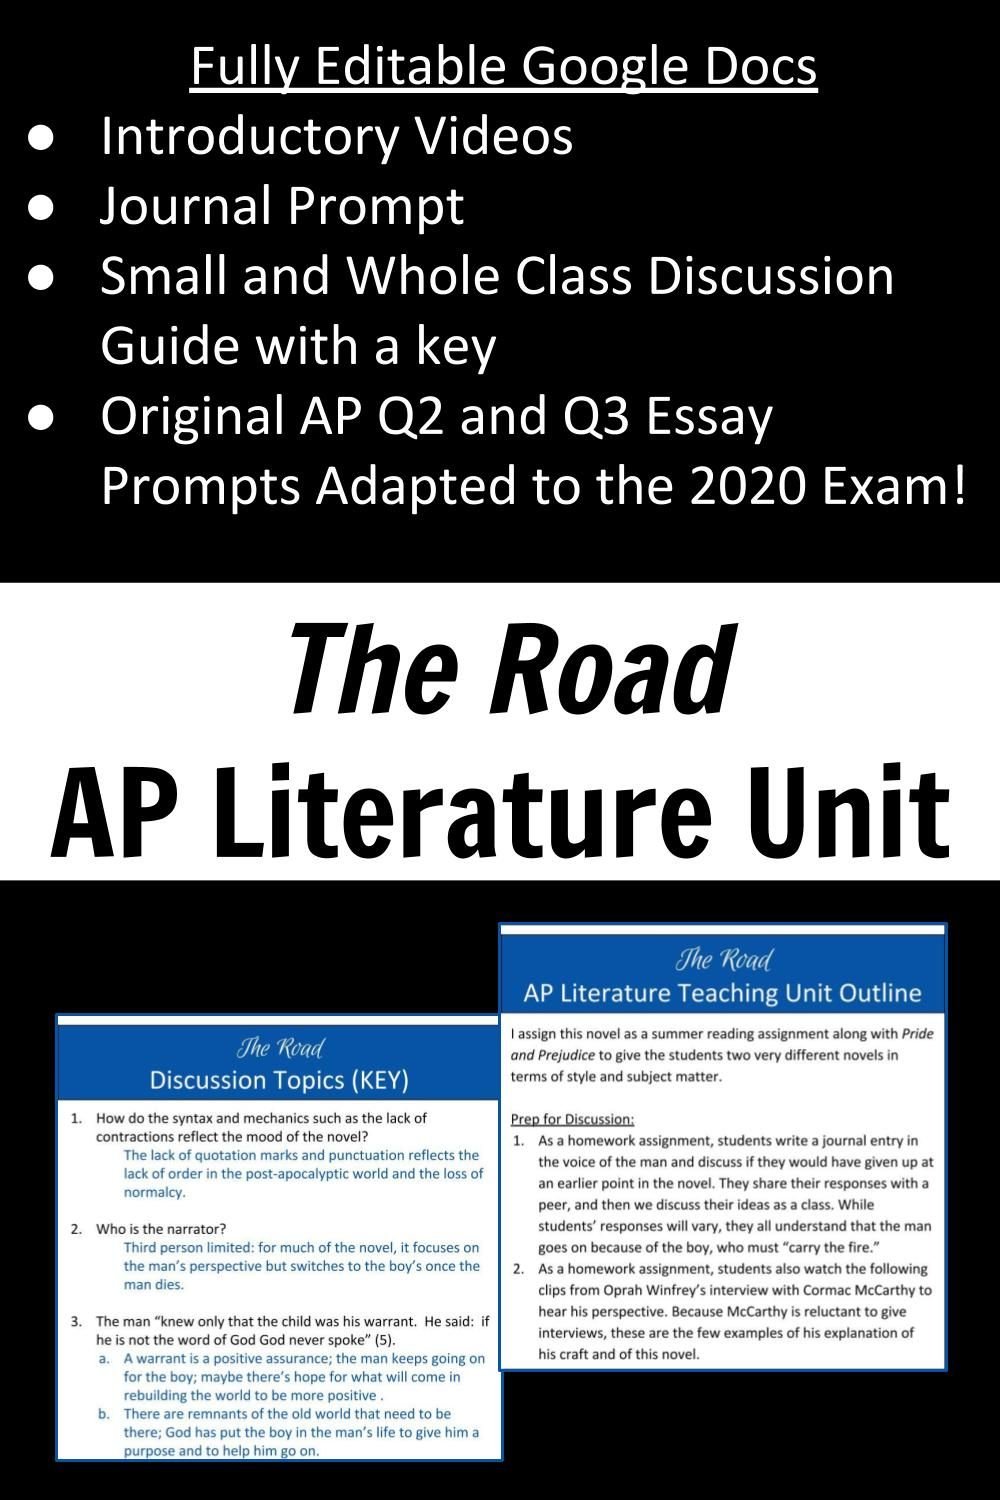 The Road Discussion Guide Key 2020 Ap Exam Essay Prompt Remote Learning Literature Topics Topic